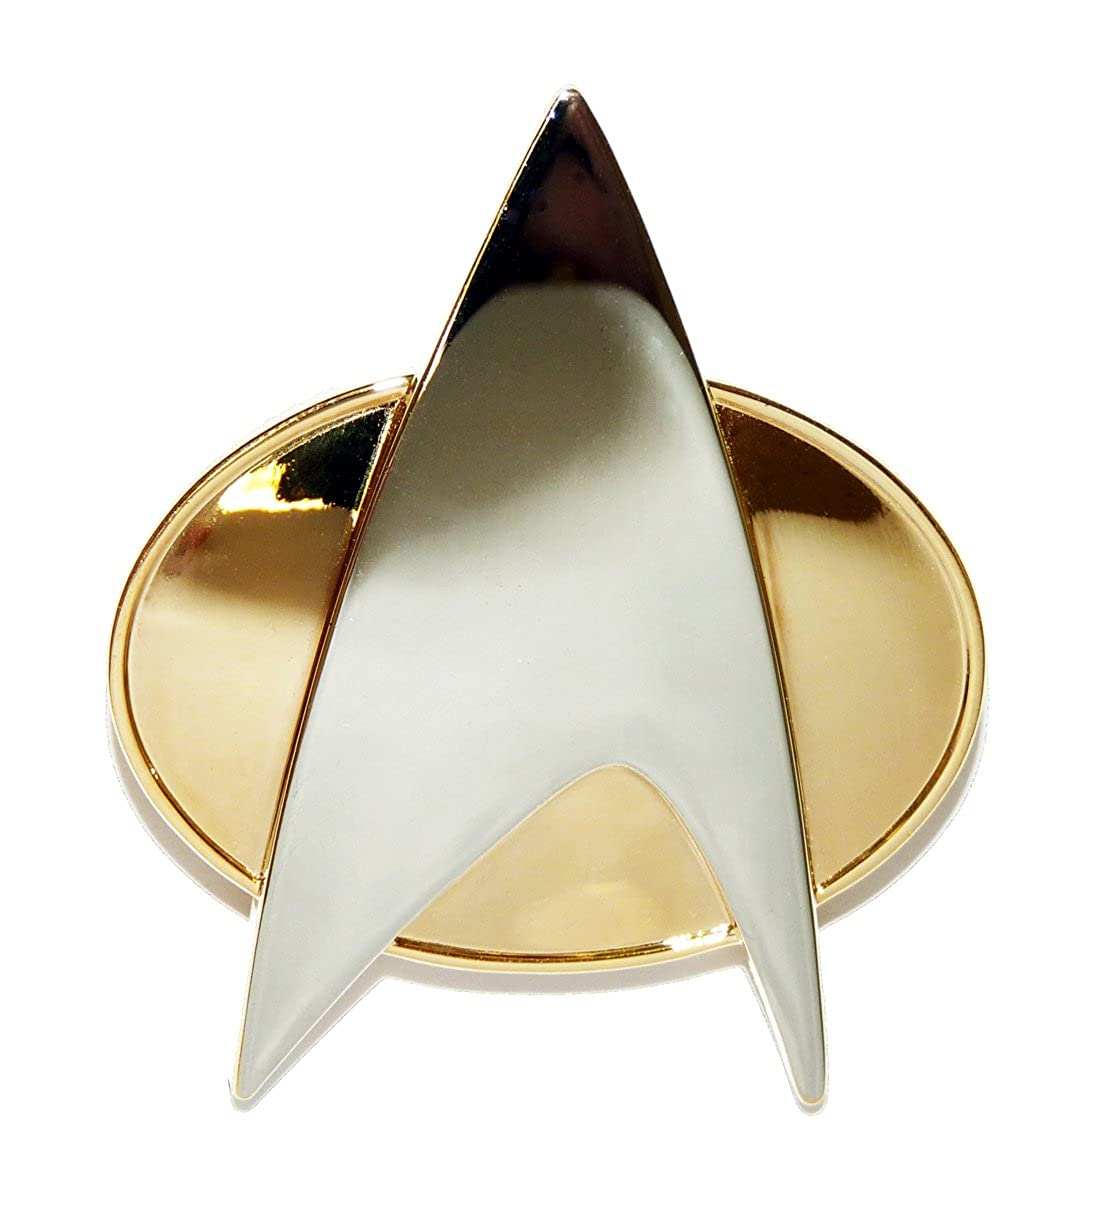 Star Trek the Next Generation Metal Communicator Pin Rodenberry.com